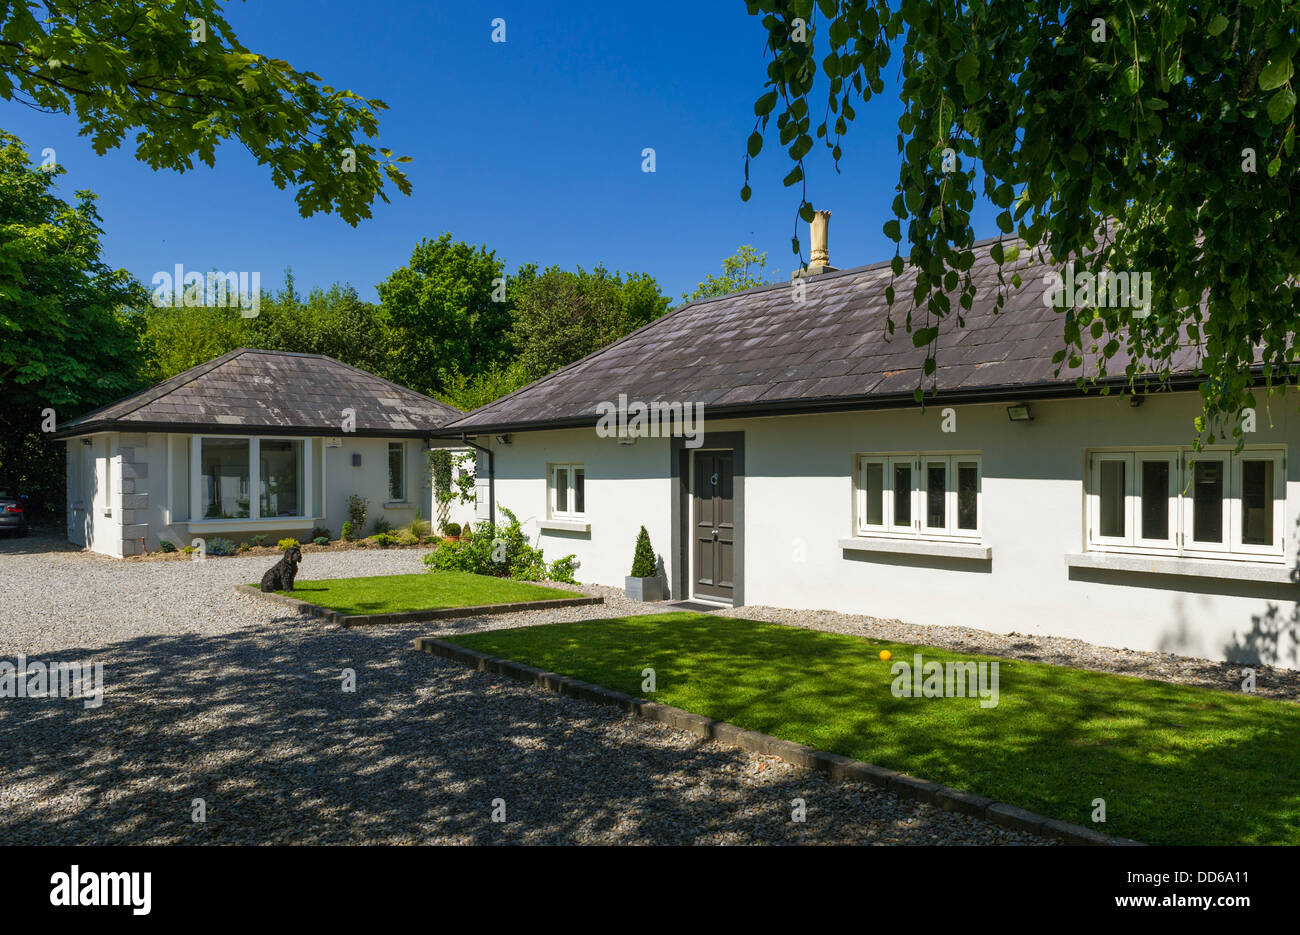 House bungalow exterior with separate home office in the garden - Stock Image